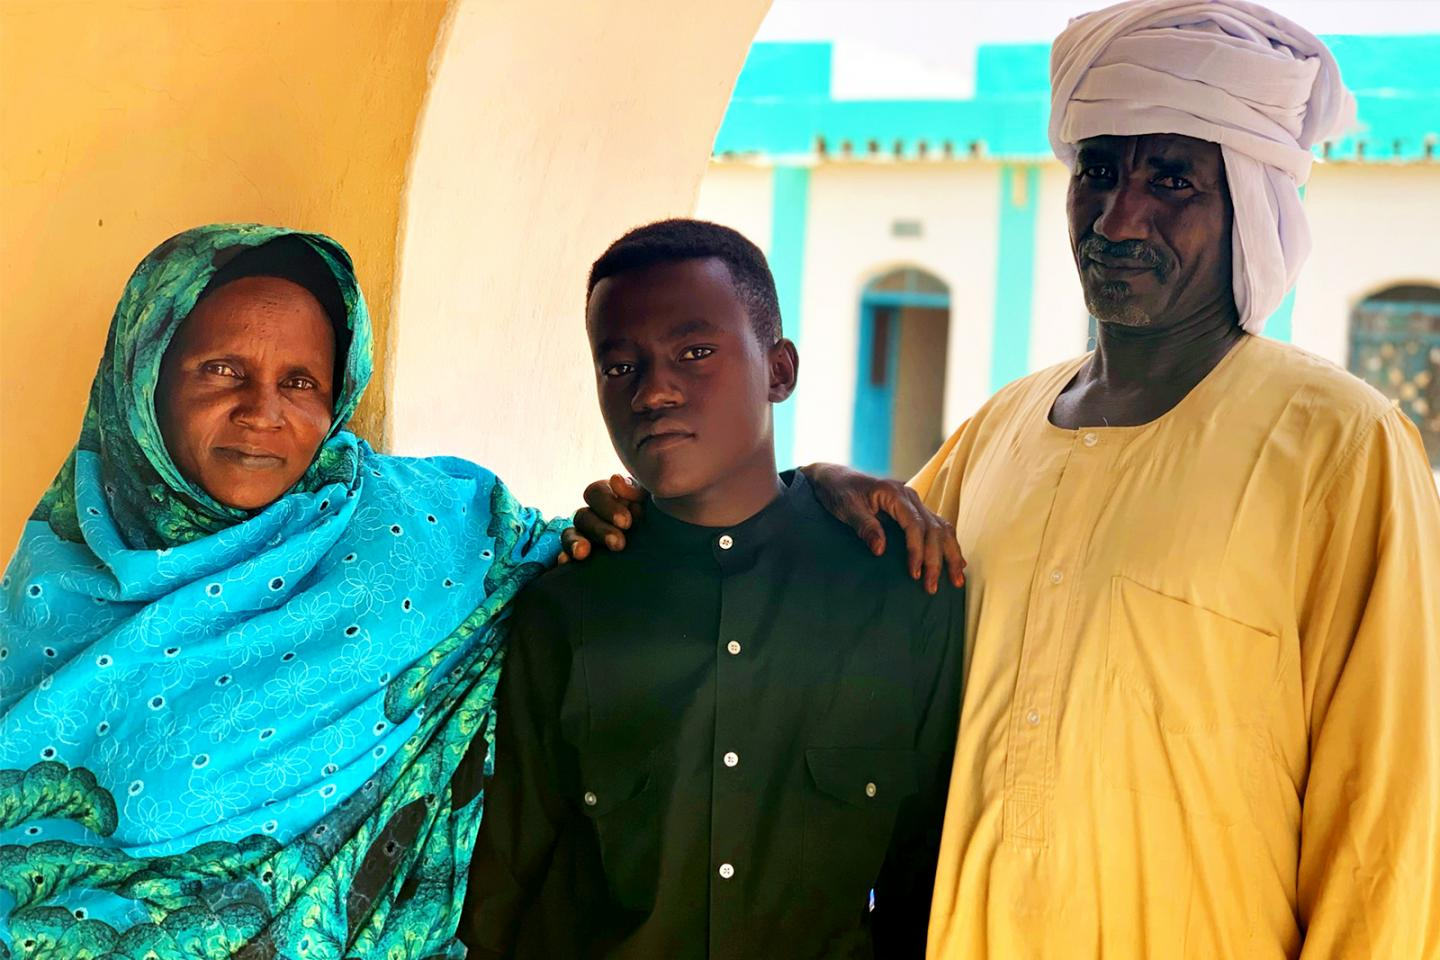 Sudan. A boy stands with his family.